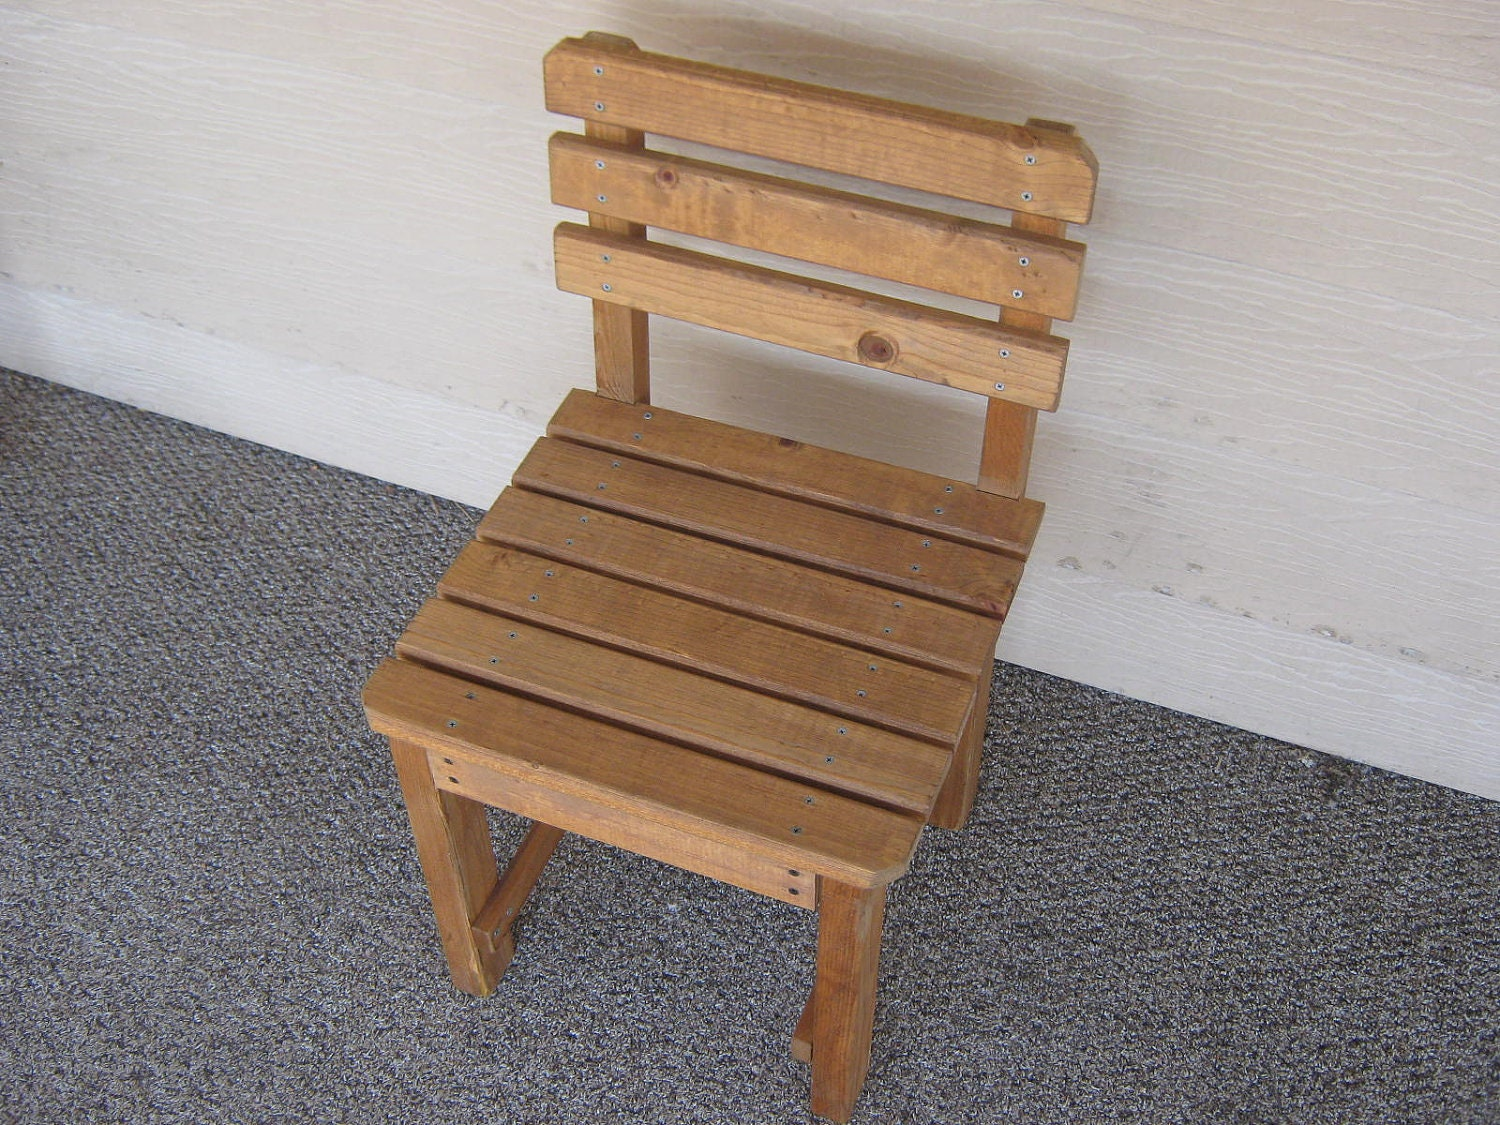 diy outdoor wood chairs | Online Woodworking Plans